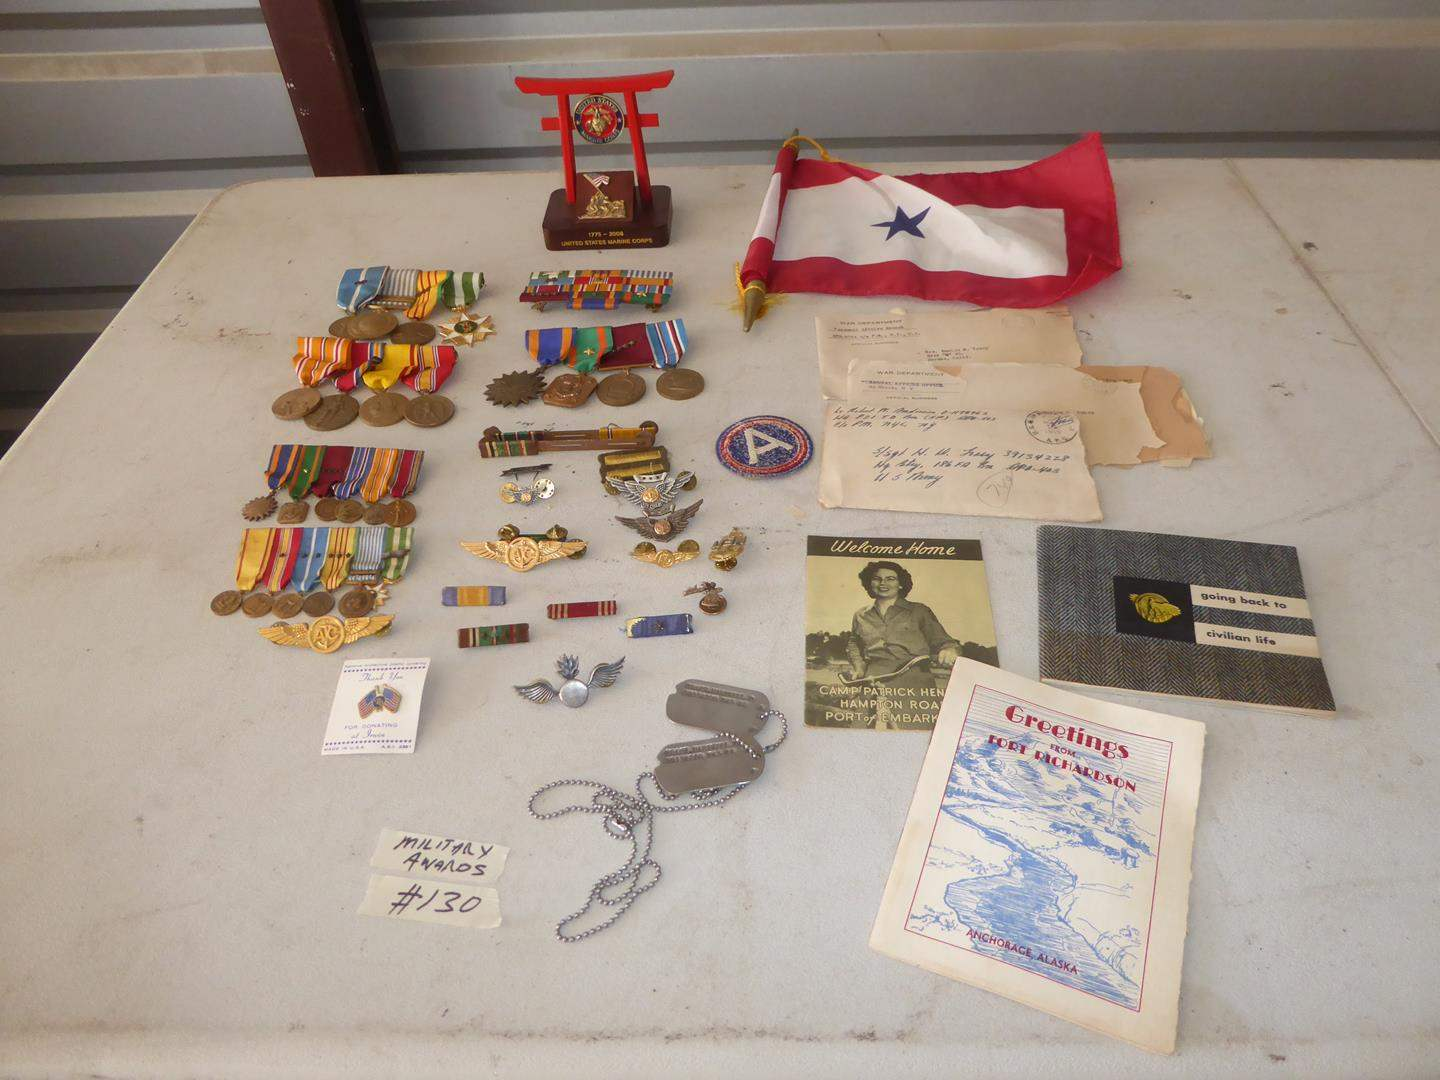 Lot # 130 - Vintage Military Awards Collection (main image)